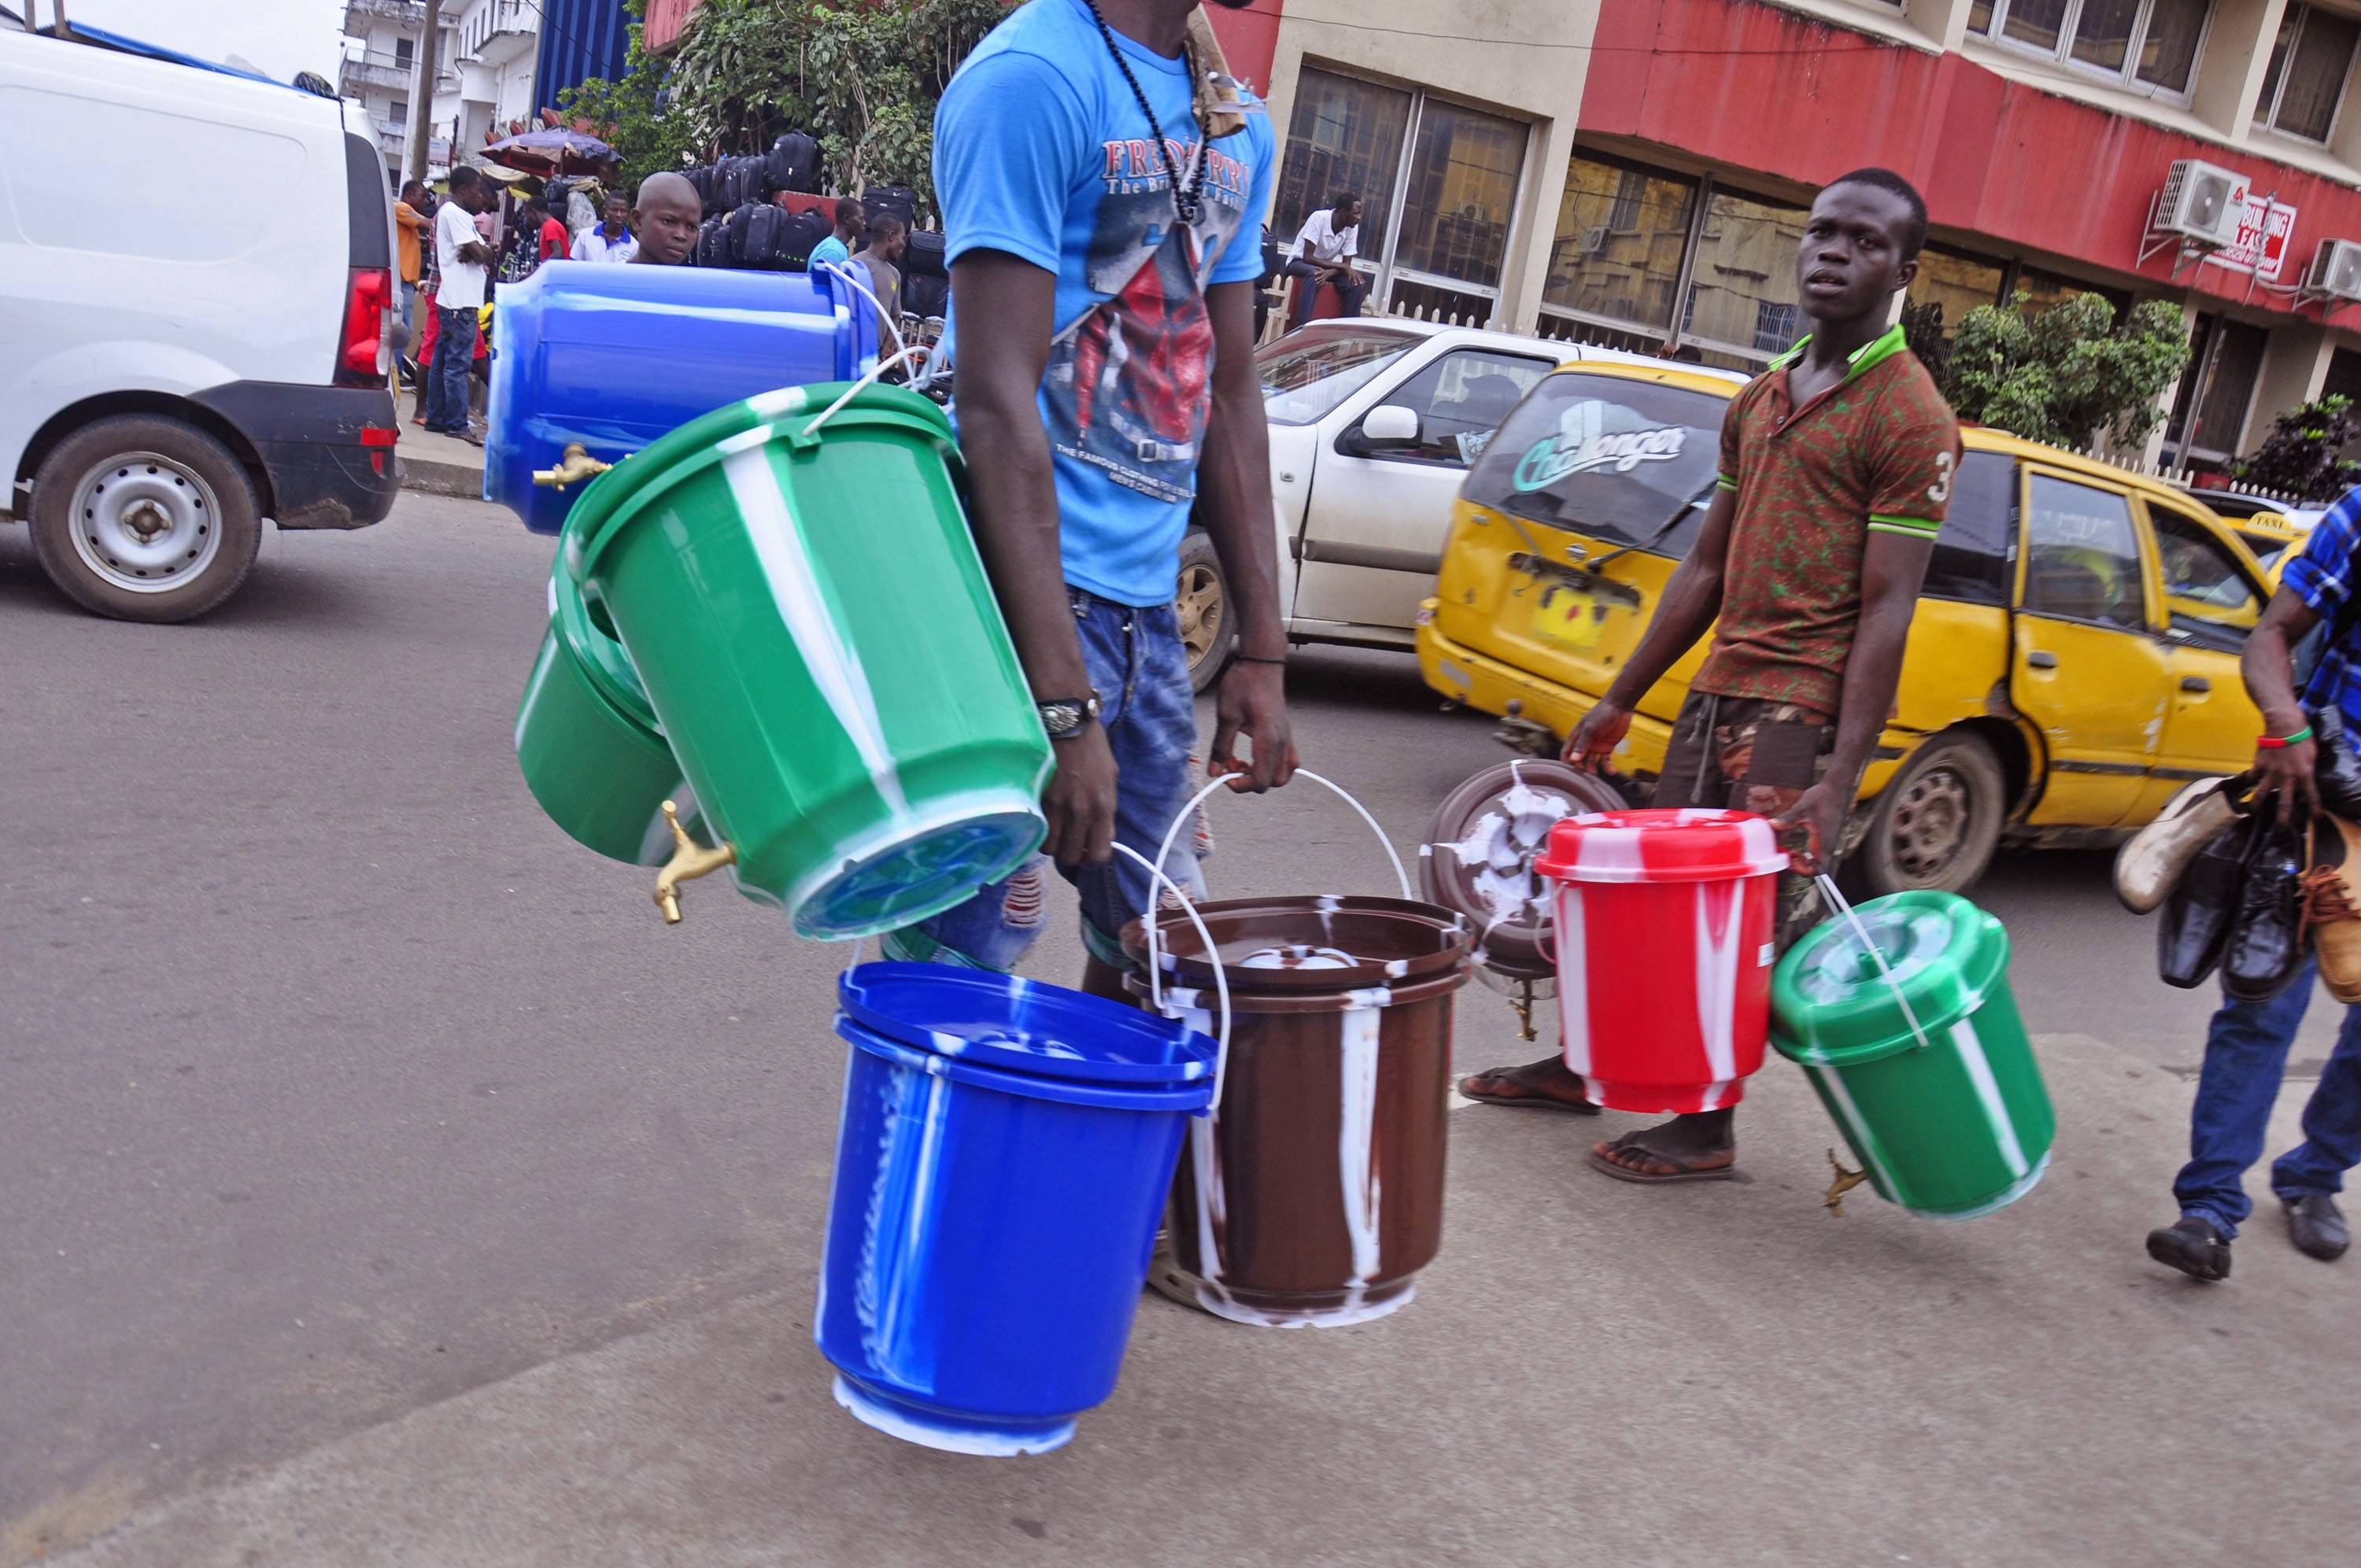 Water bucket sellers hawk their wares Wednesday as the public buys them to try to protect themselves from the deadly Ebola virus, in Monrovia, Liberia. The price of buckets has increased as Liberian people are encouraged to wash their hands after filling it with disinfectant to prevent the spread of the deadly Ebola virus. The World Health Organization has declared the outbreak an international emergency.